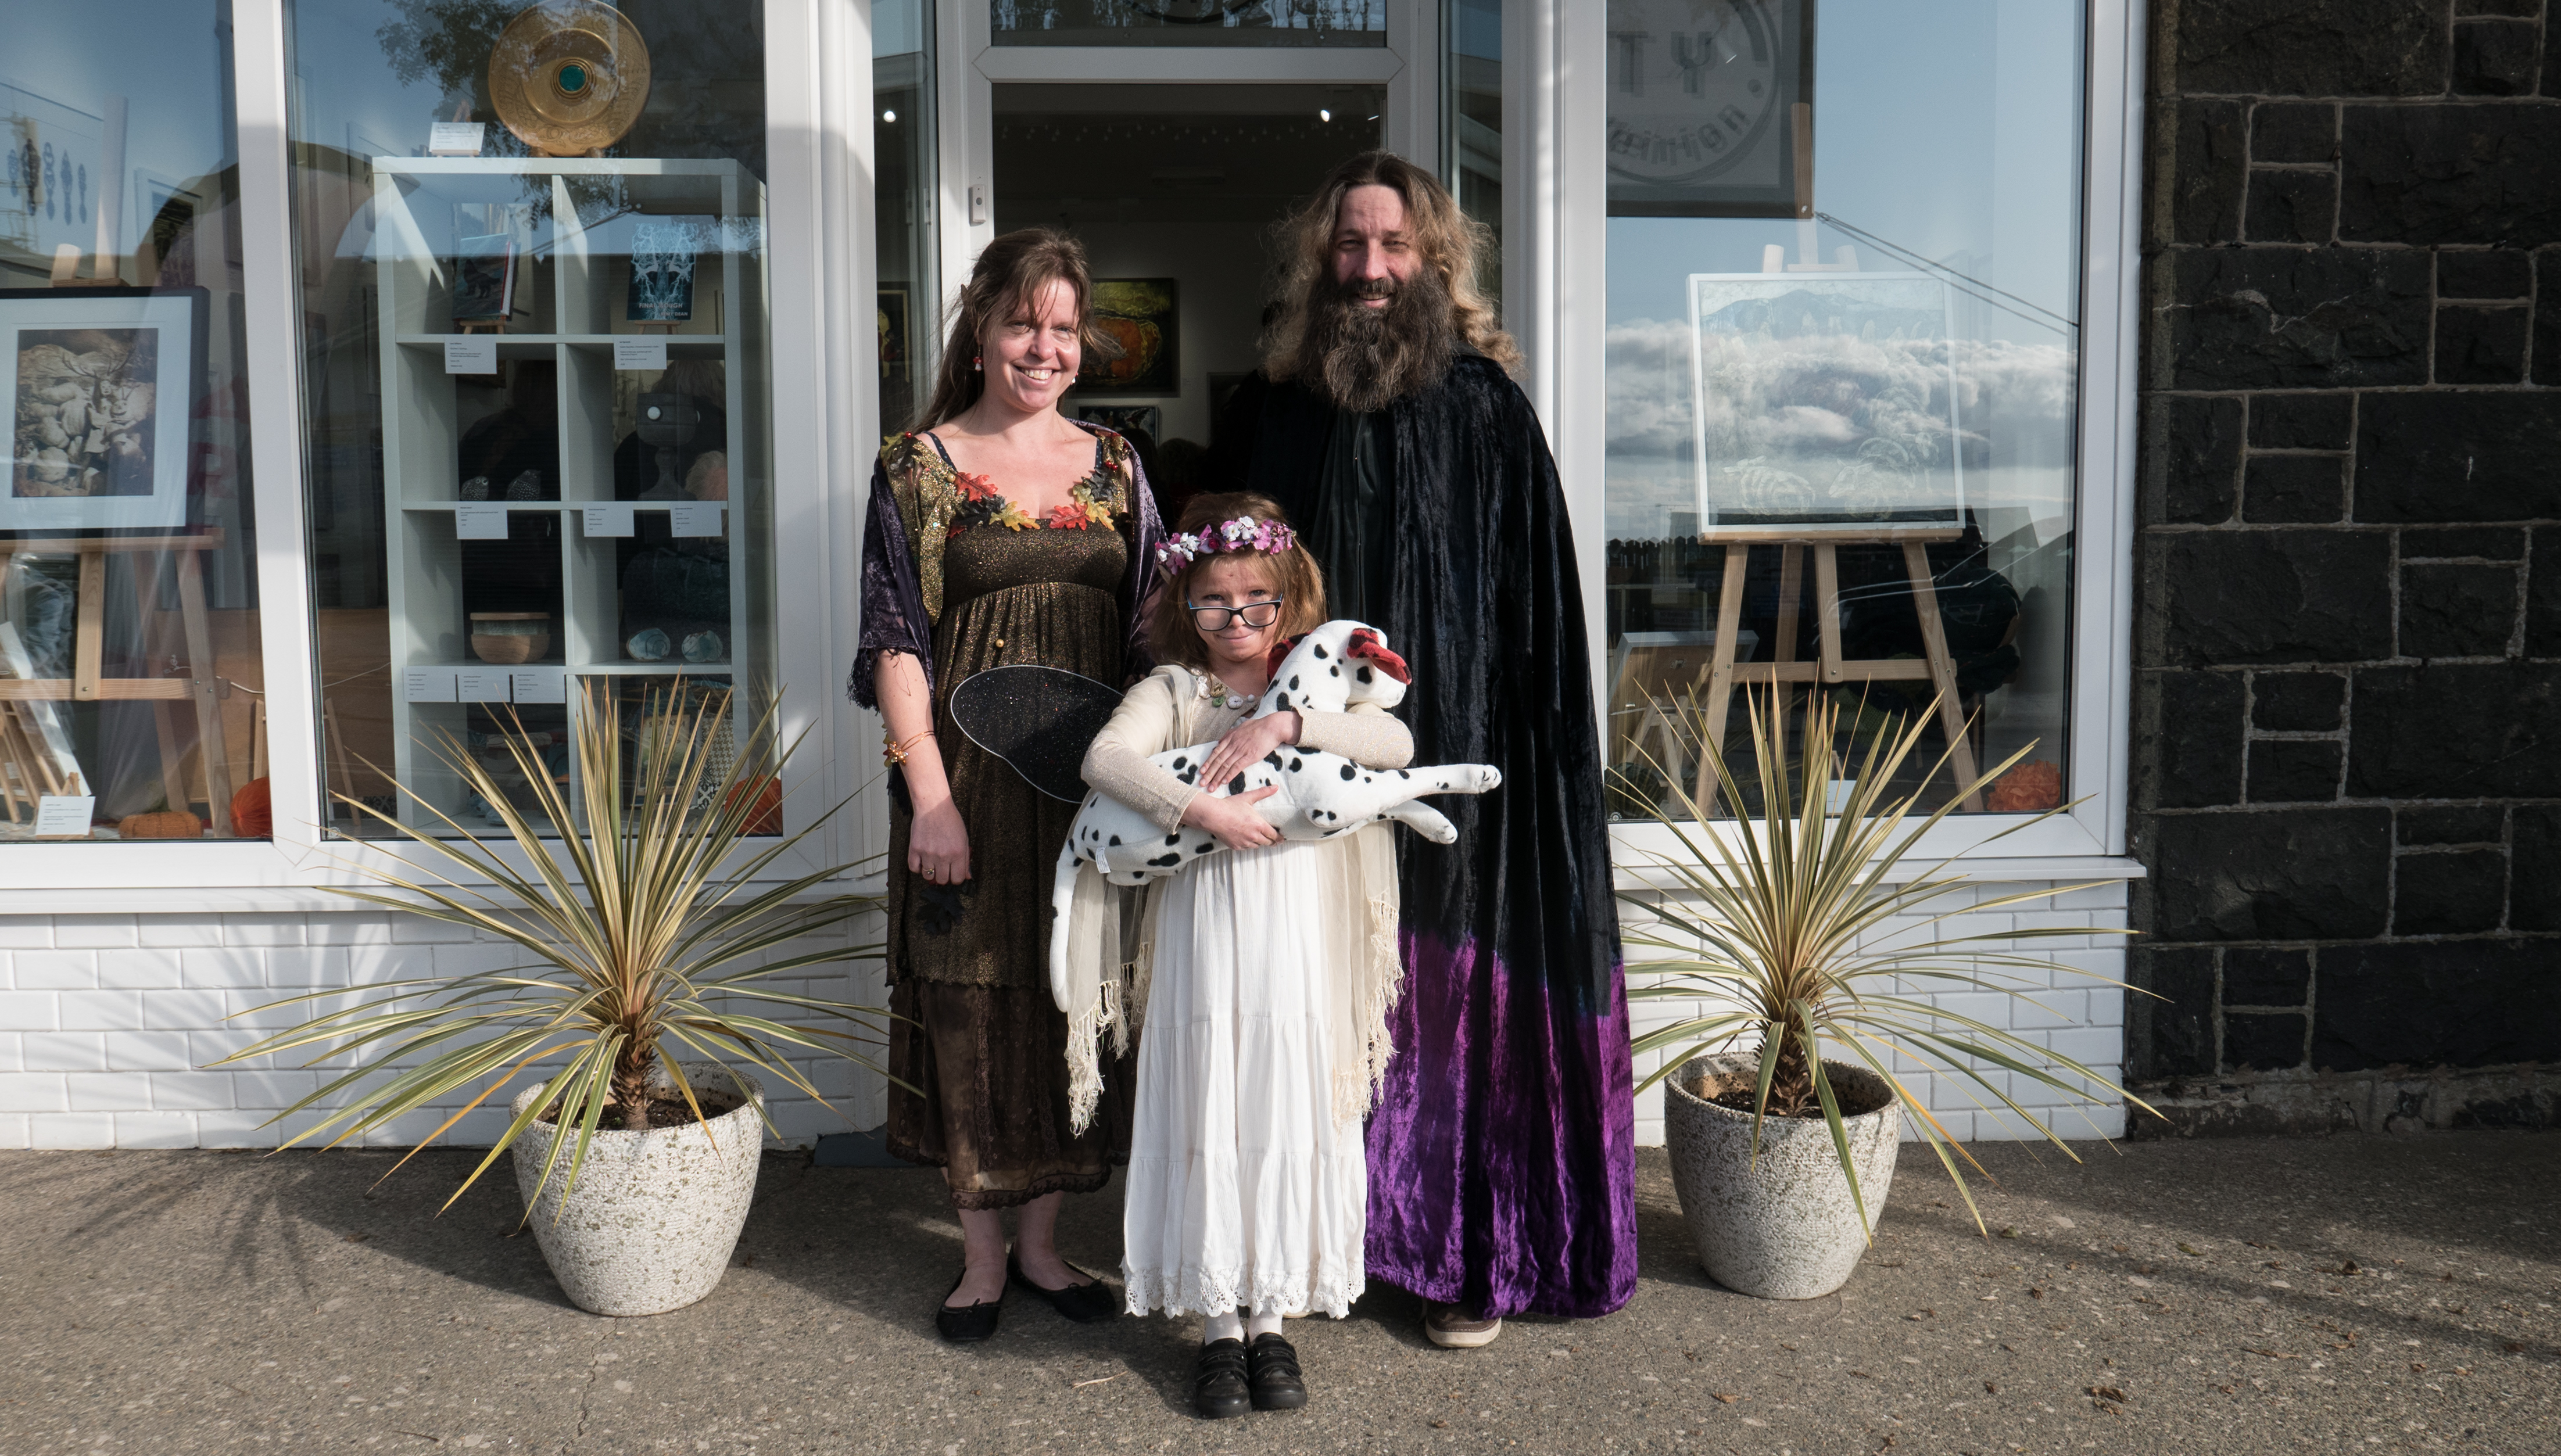 Katy Jones - Illustration artist with husband and daughter at the launch dressed in theme